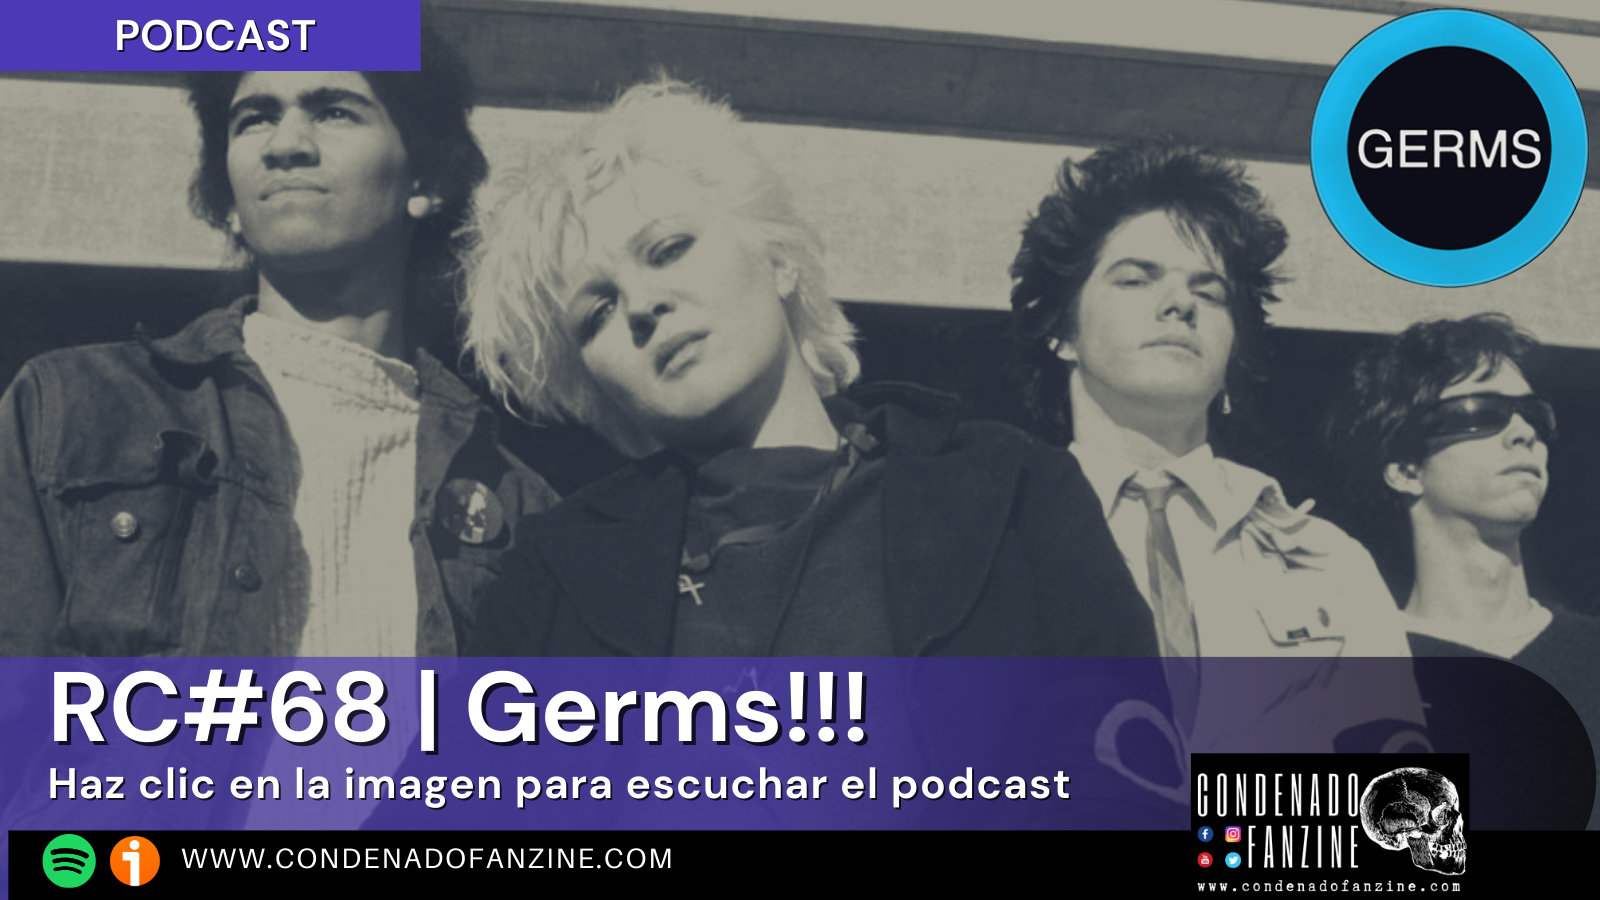 Podcast RC#68 | La historia de Darby Crash y The Germs